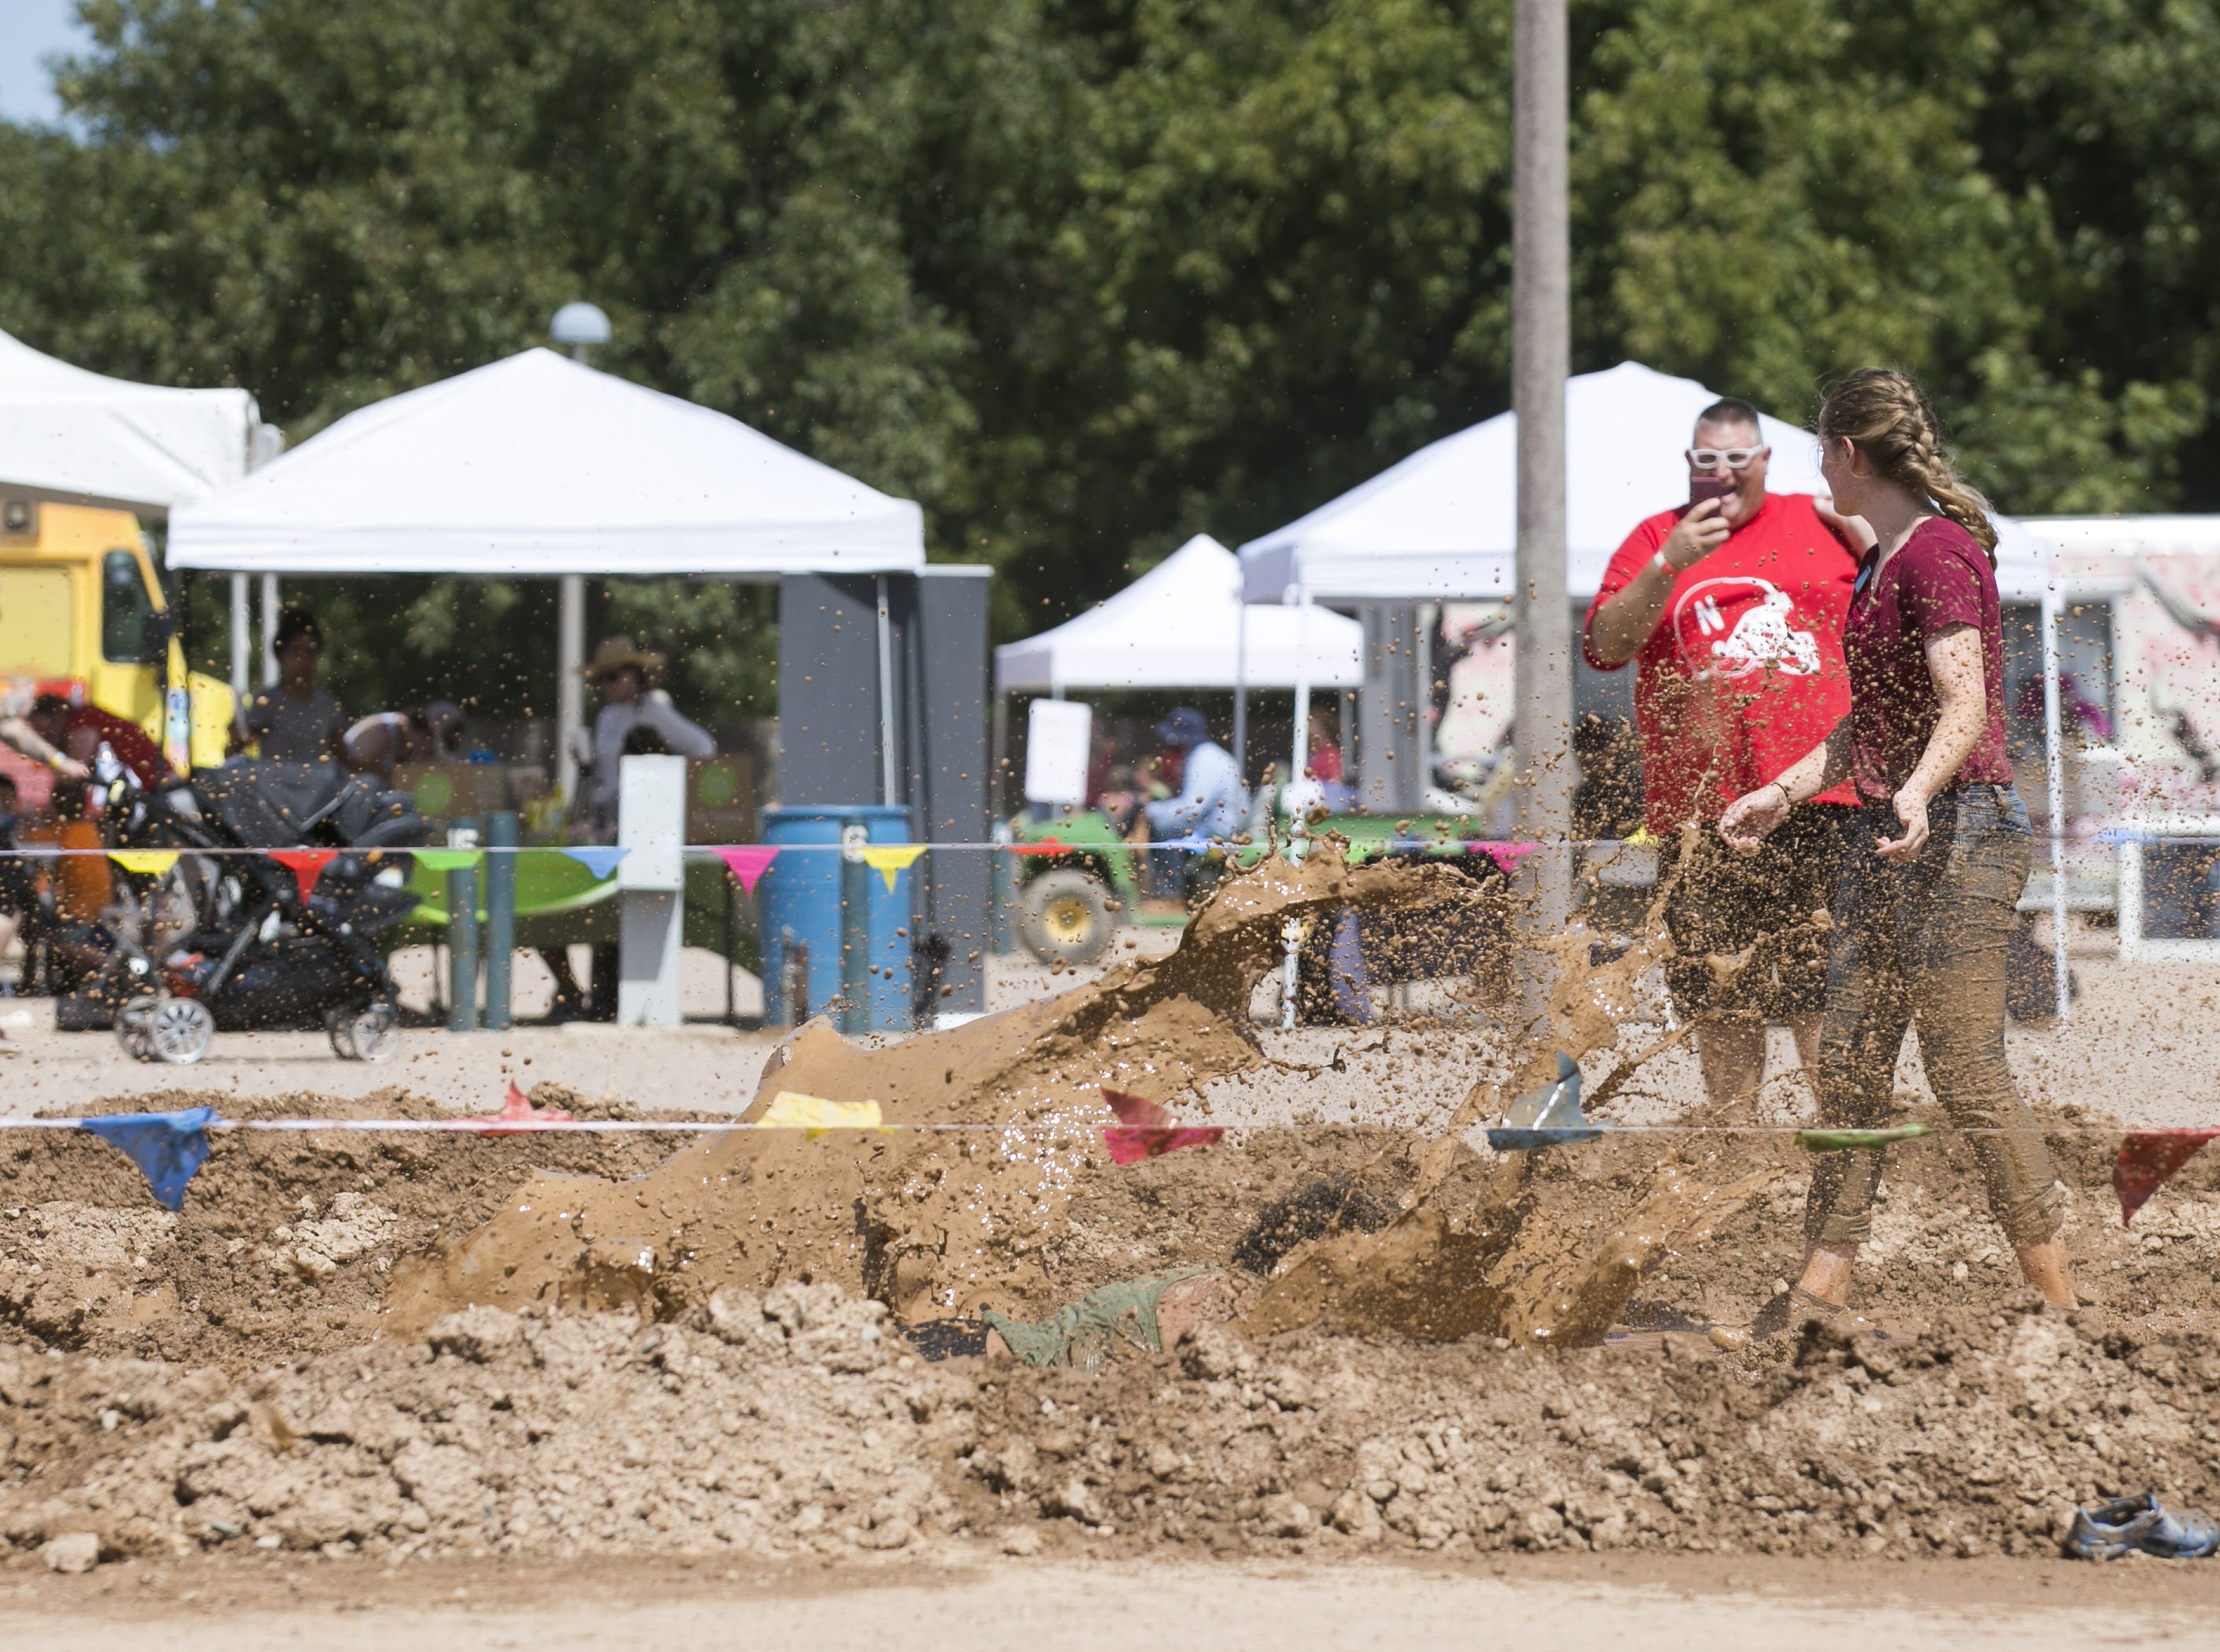 17-year-old Raven McCoo takes a dive into a mud pit at the third annual Messy Fest in Queen Creek on Saturday, Sept. 15, 2018.